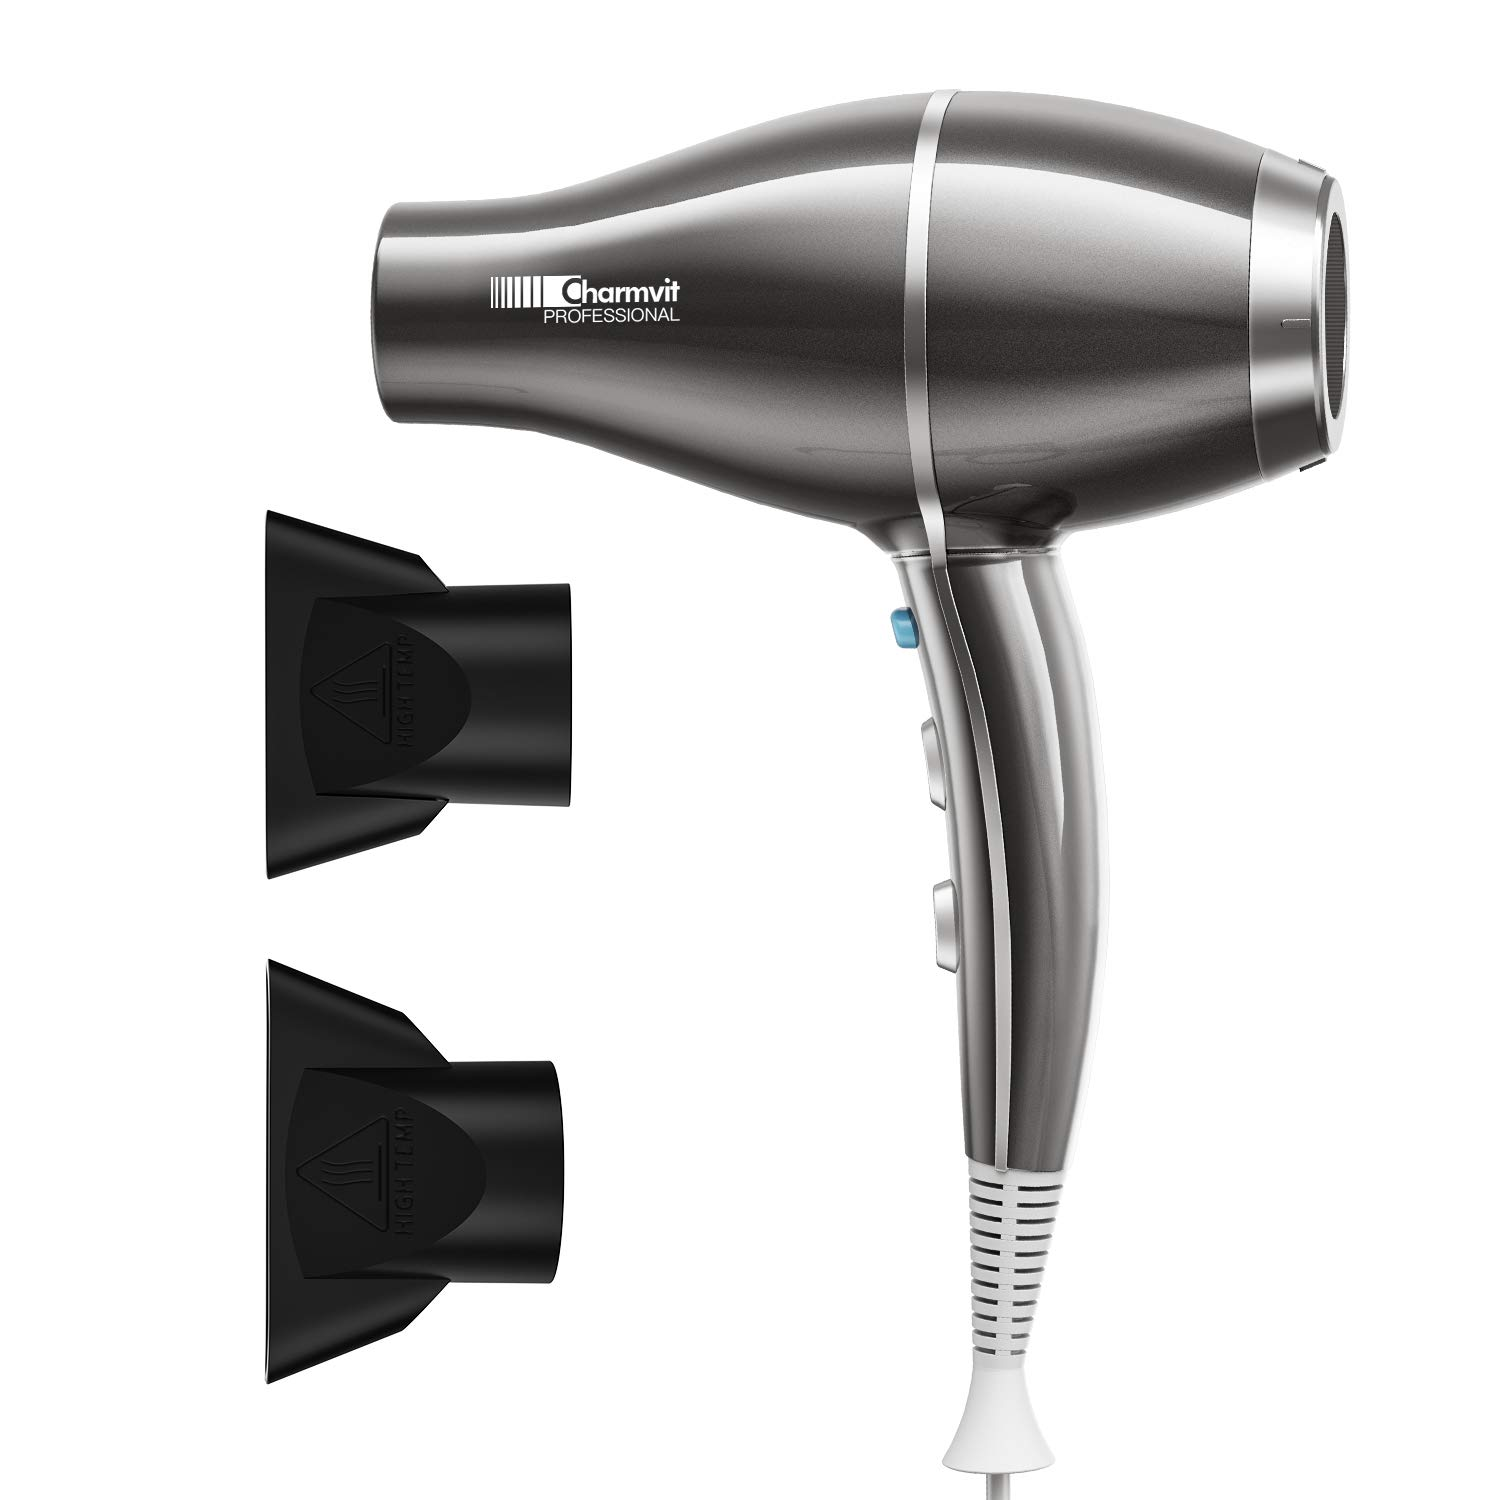 Professional Powerful 2000W Hair Dryer Negative Ion Blow Dryer